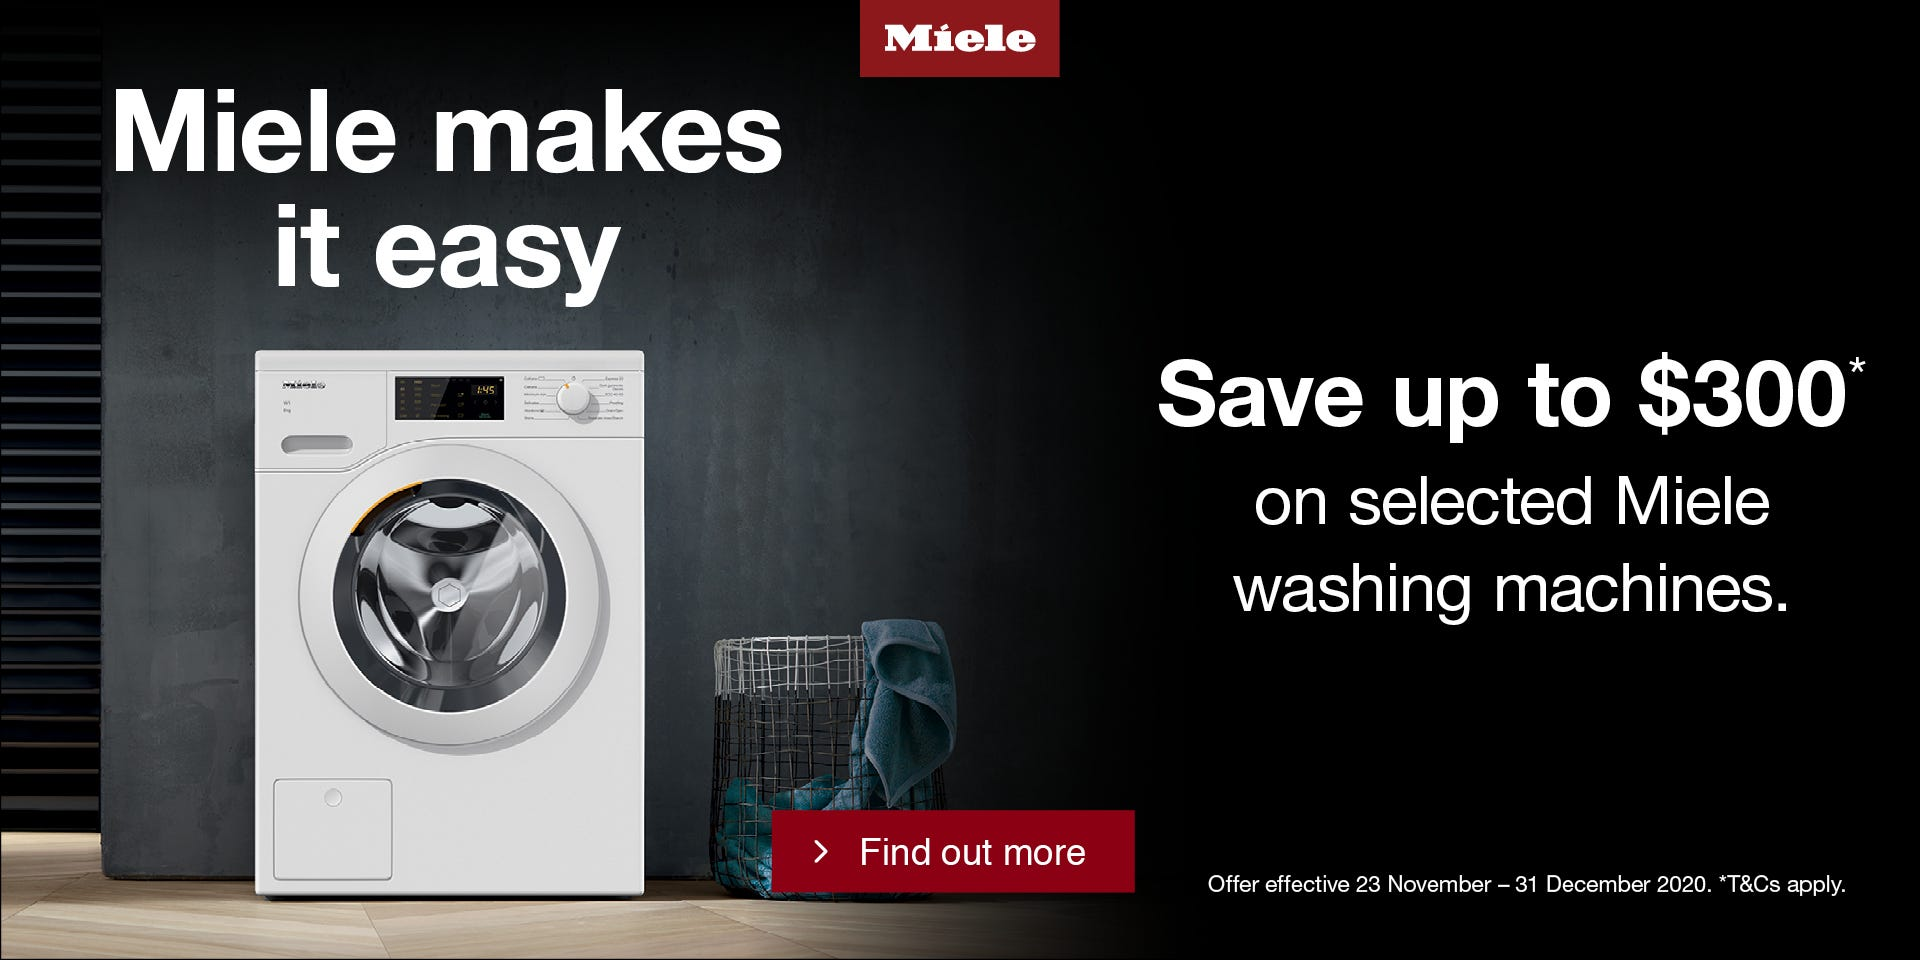 Save up to $300 on selected Miele Washing Machines. Conditions apply - ENDS 31/12/20